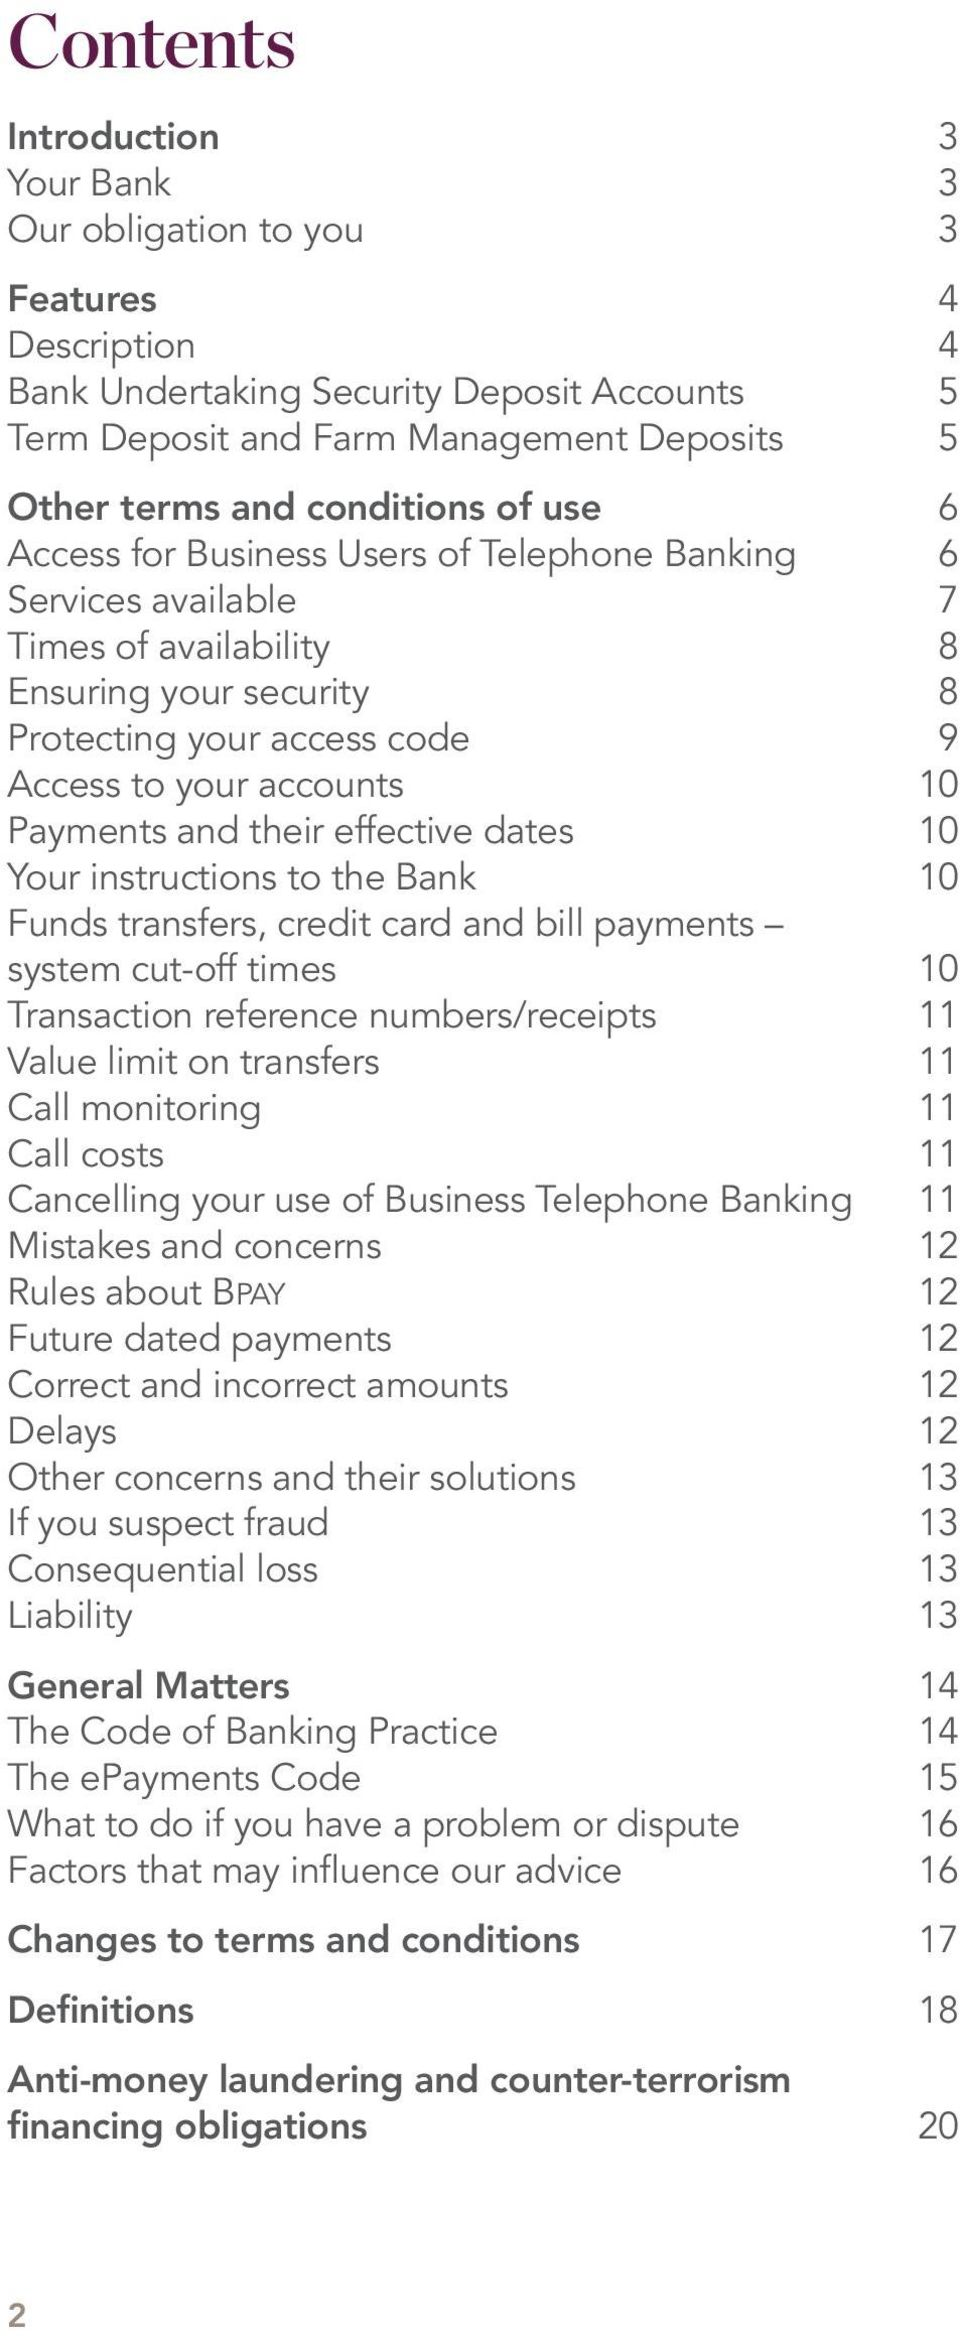 Payments and their effective dates 10 Your instructions to the Bank 10 Funds transfers, credit card and bill payments system cut-off times 10 Transaction reference numbers/receipts 11 Value limit on